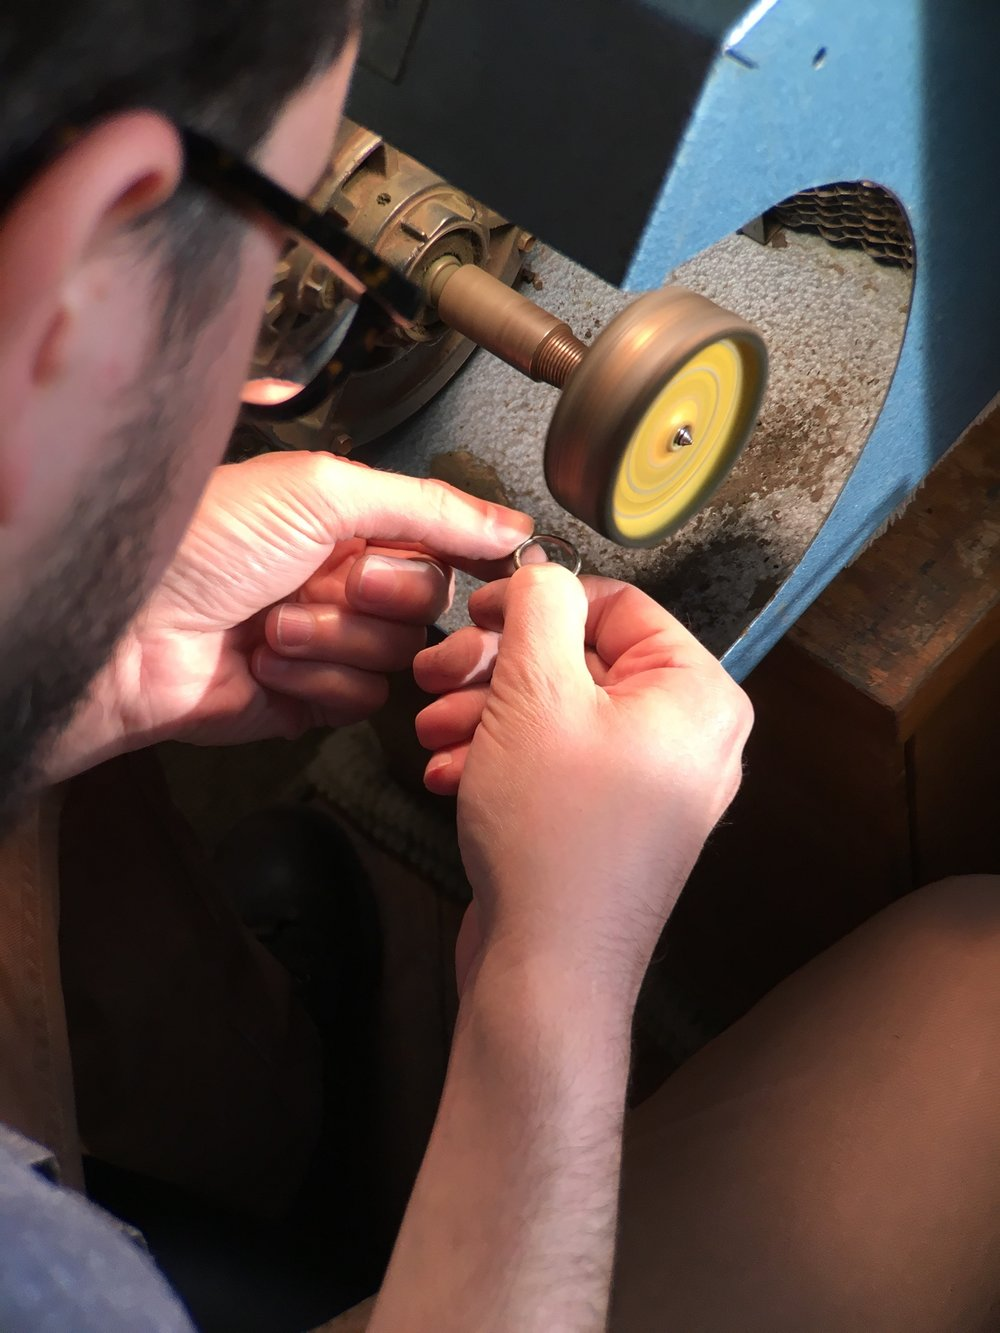 Make your own wedding rings with The Wedding Ring Experience in New York City Written by Emelie Samuelson of the Awkwardly Alive Blog